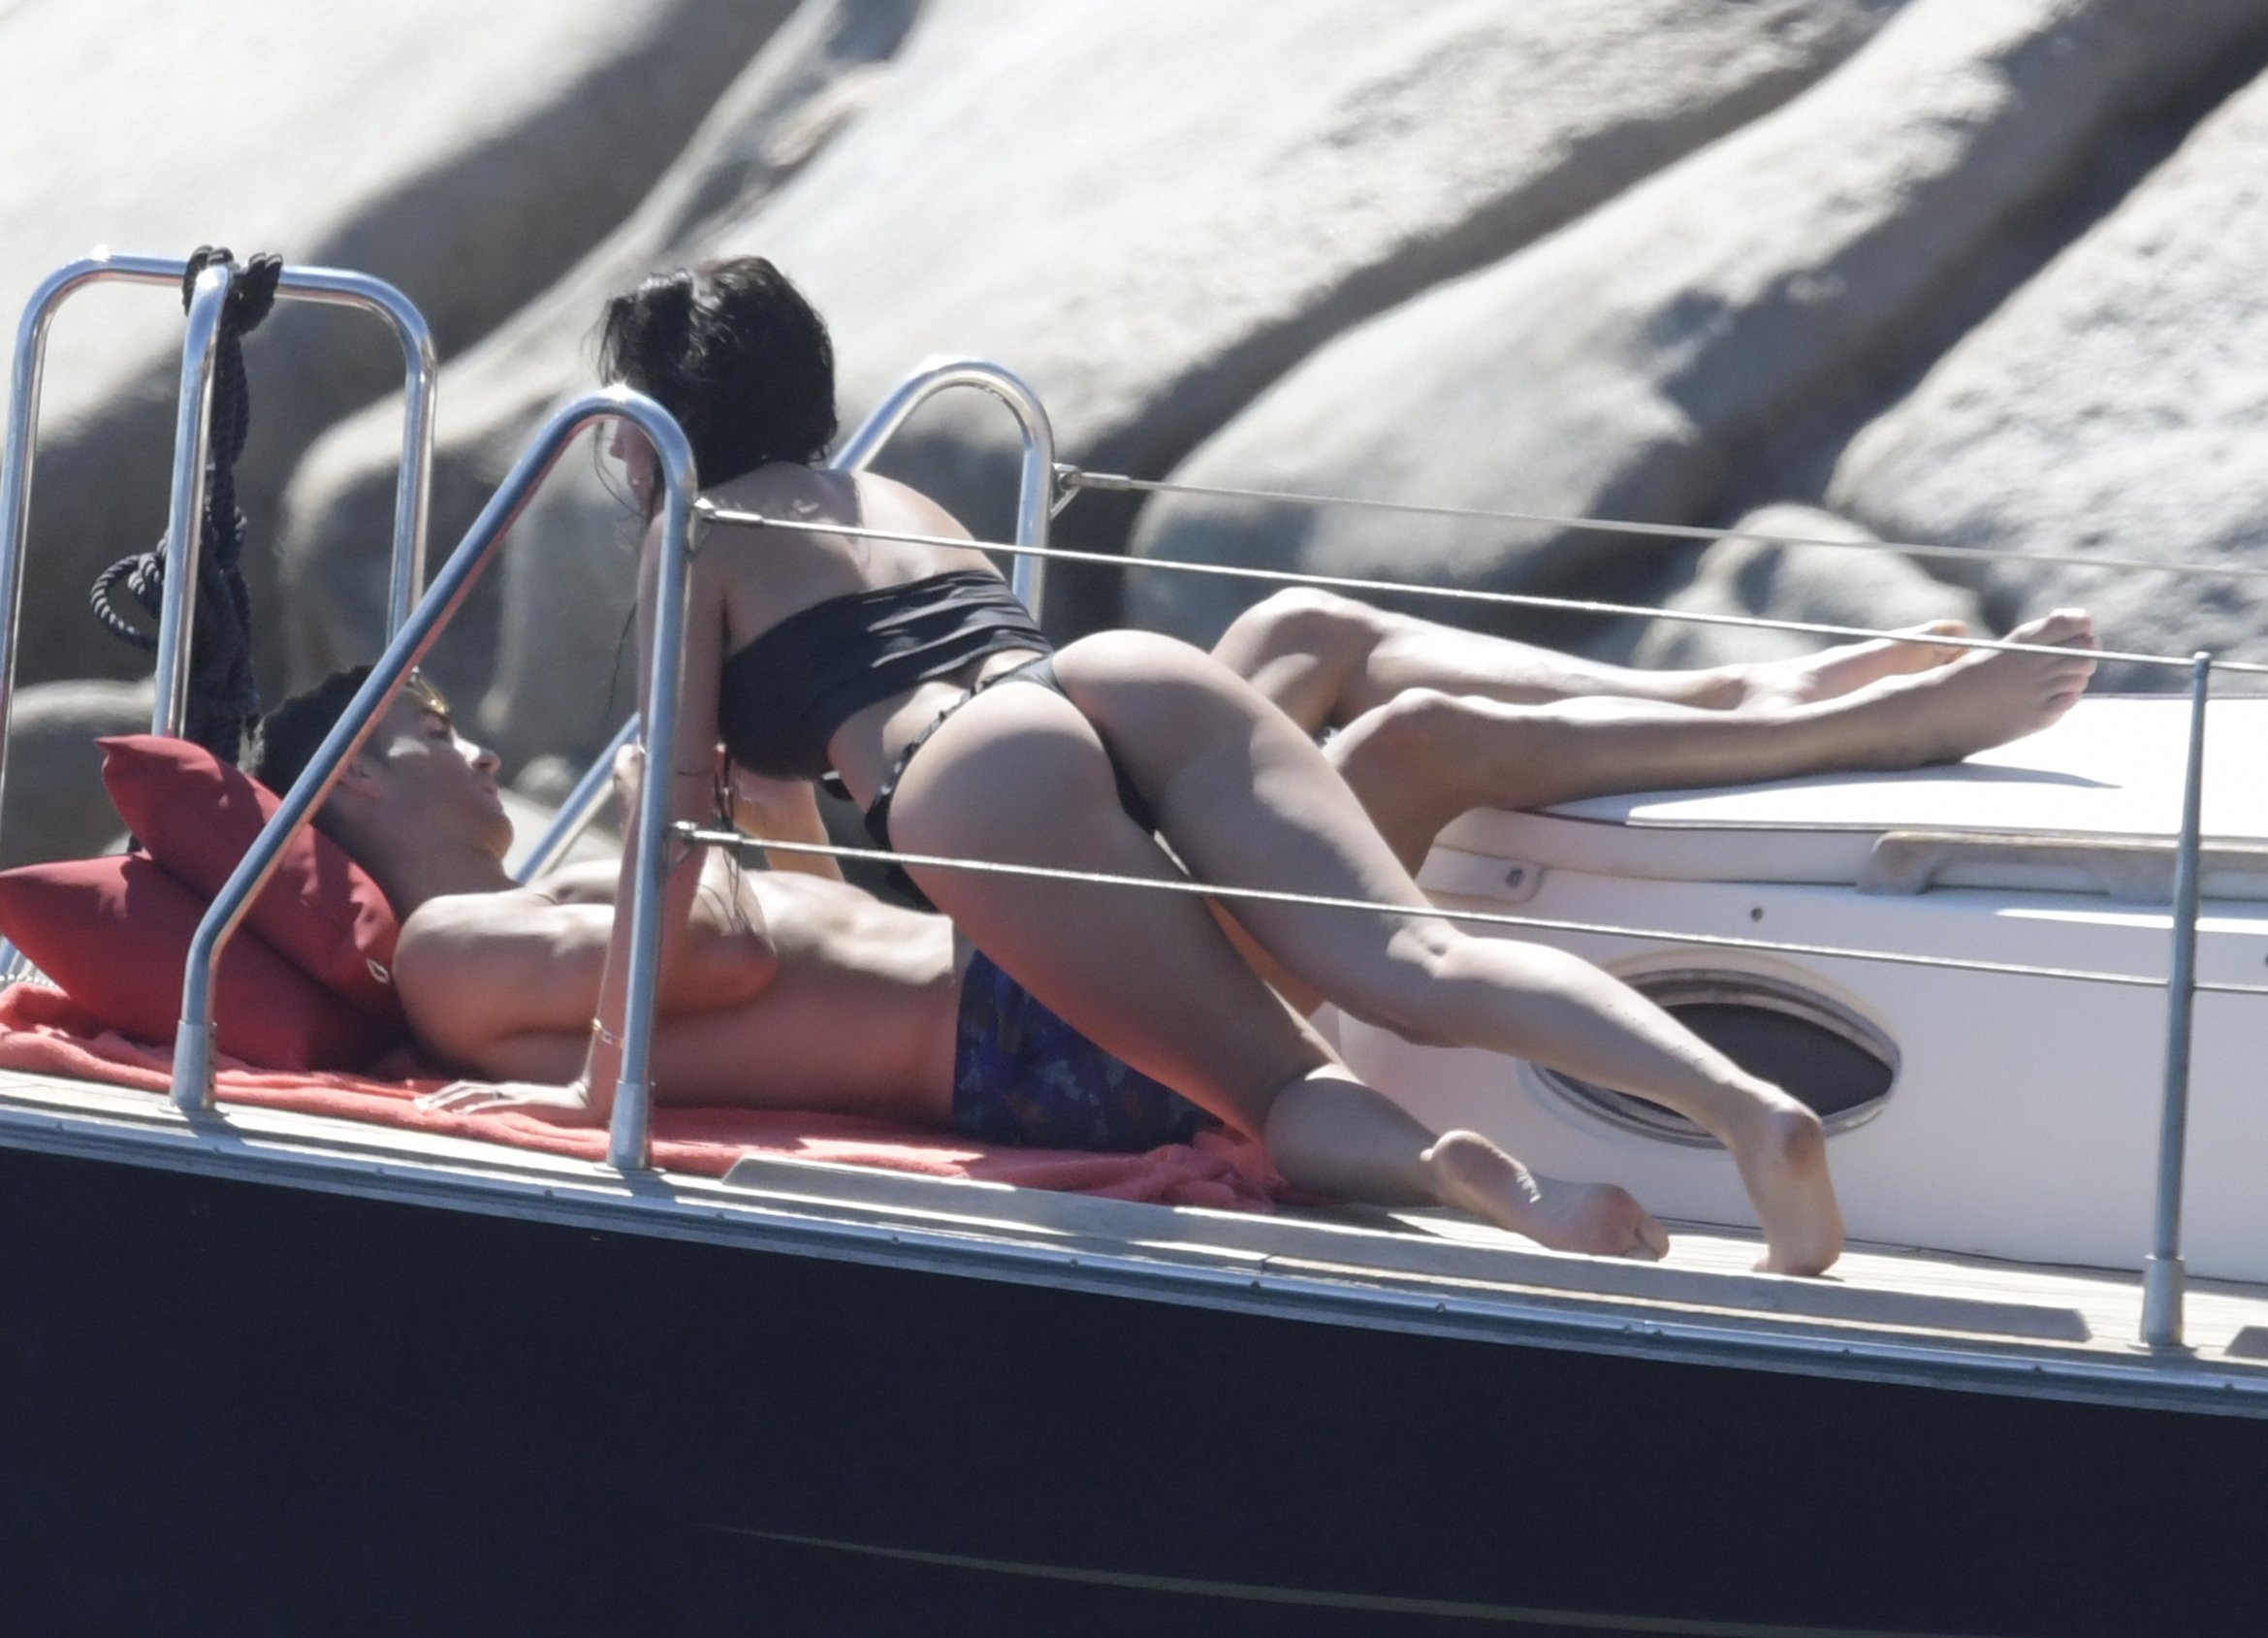 Cristiano Ronaldo and Georgina Rodriguez sharing PDA on a yacht, during a getaway in Sardinia with son Cristiano jr. 03 Sep 2018, Image: 385129761, License: Rights-managed, Restrictions: NO Italy, Spain, Model Release: no, Credit line: Profimedia, Mega Agency